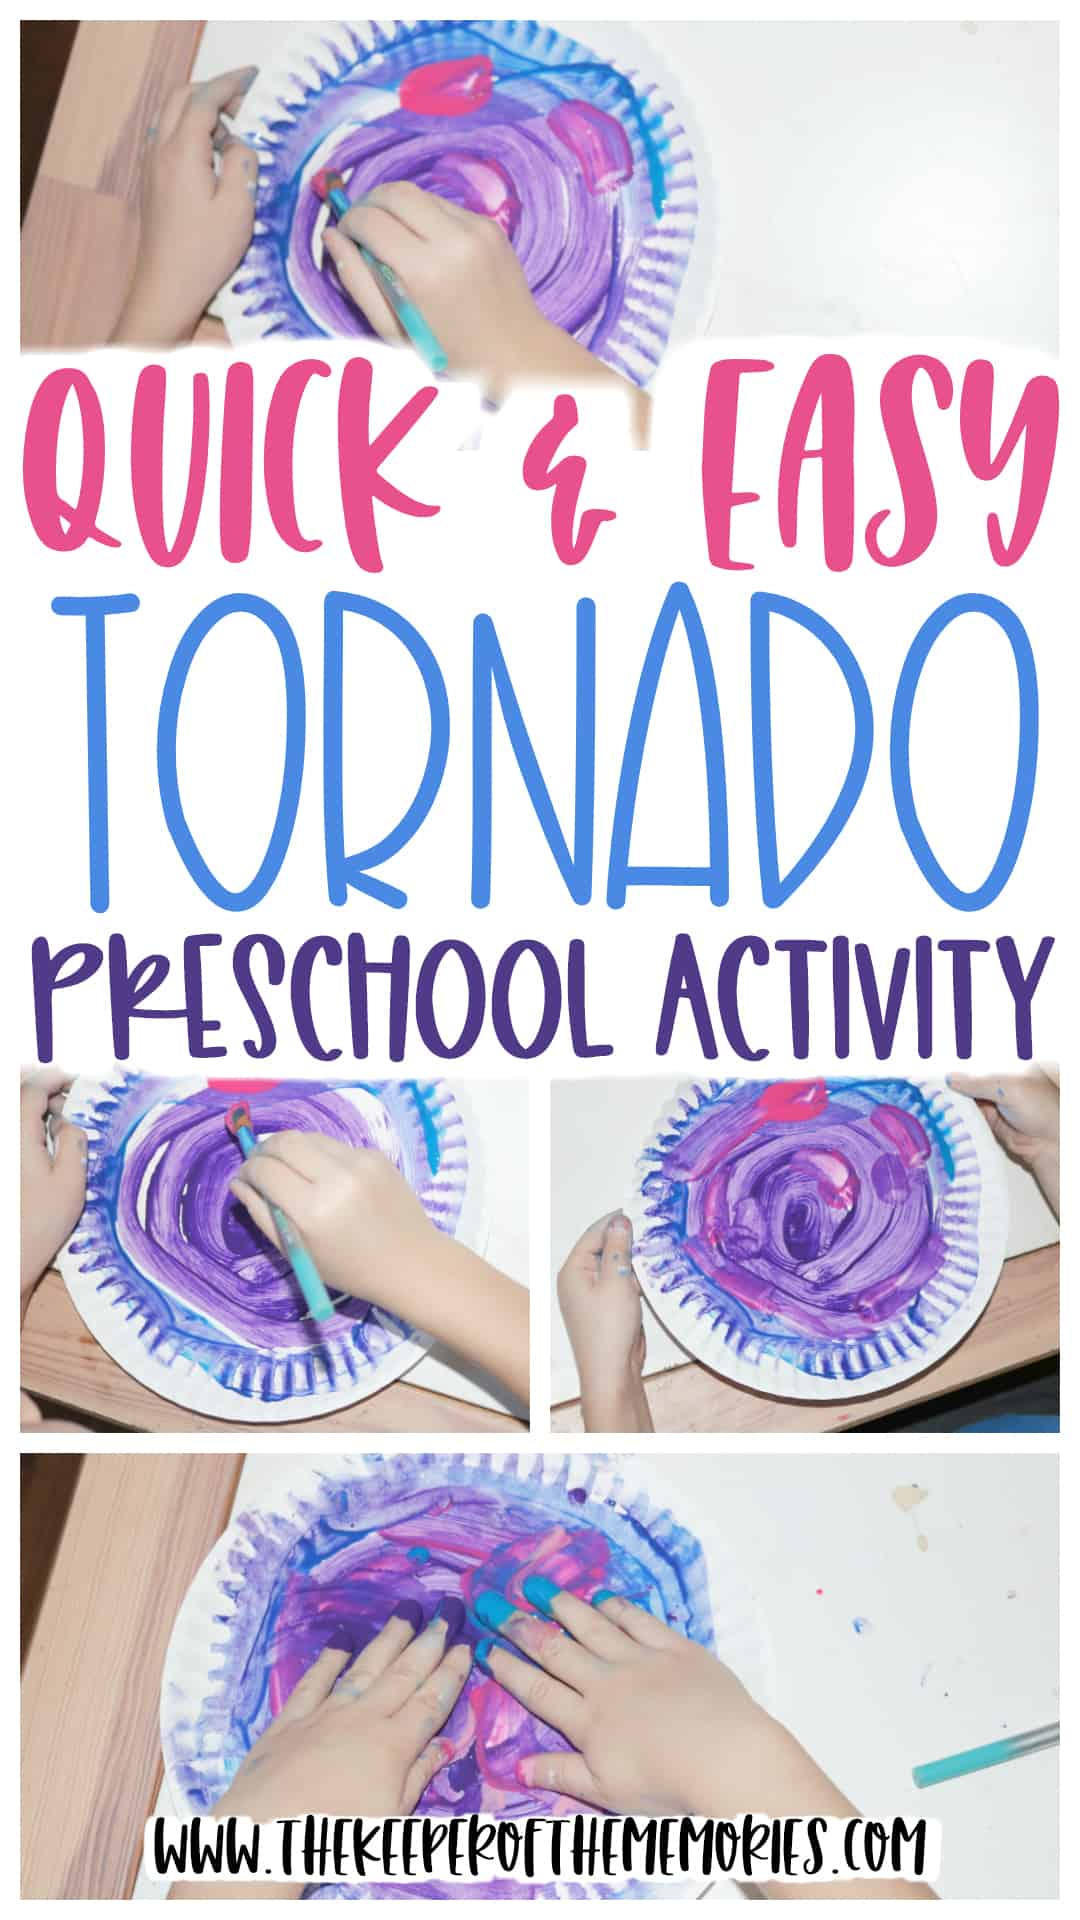 Exploring Tornados with Little Kids